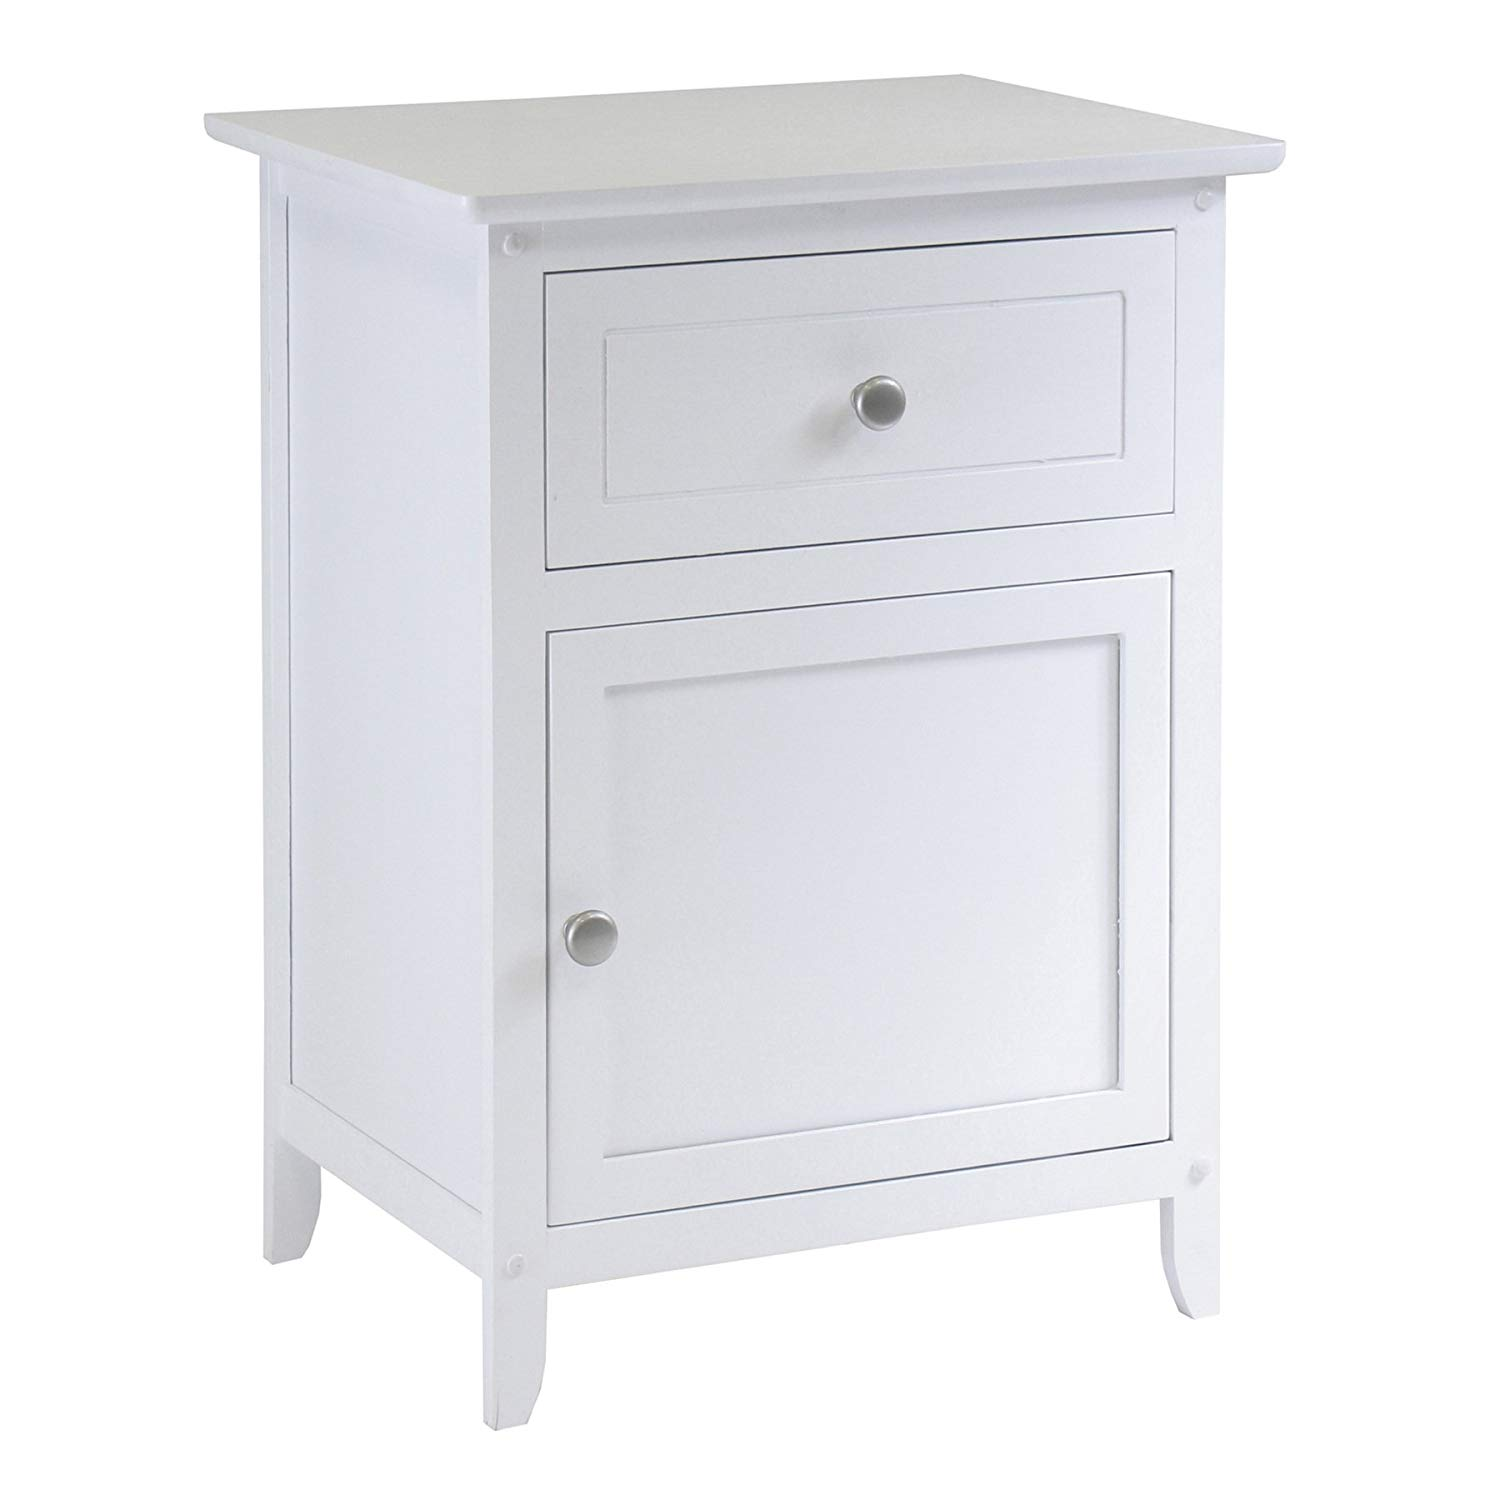 winsome wood night stand accent table drawer cabinet storage white with laminate door threshold cordless lights nesting dining grey round coffee world market side inch trestle